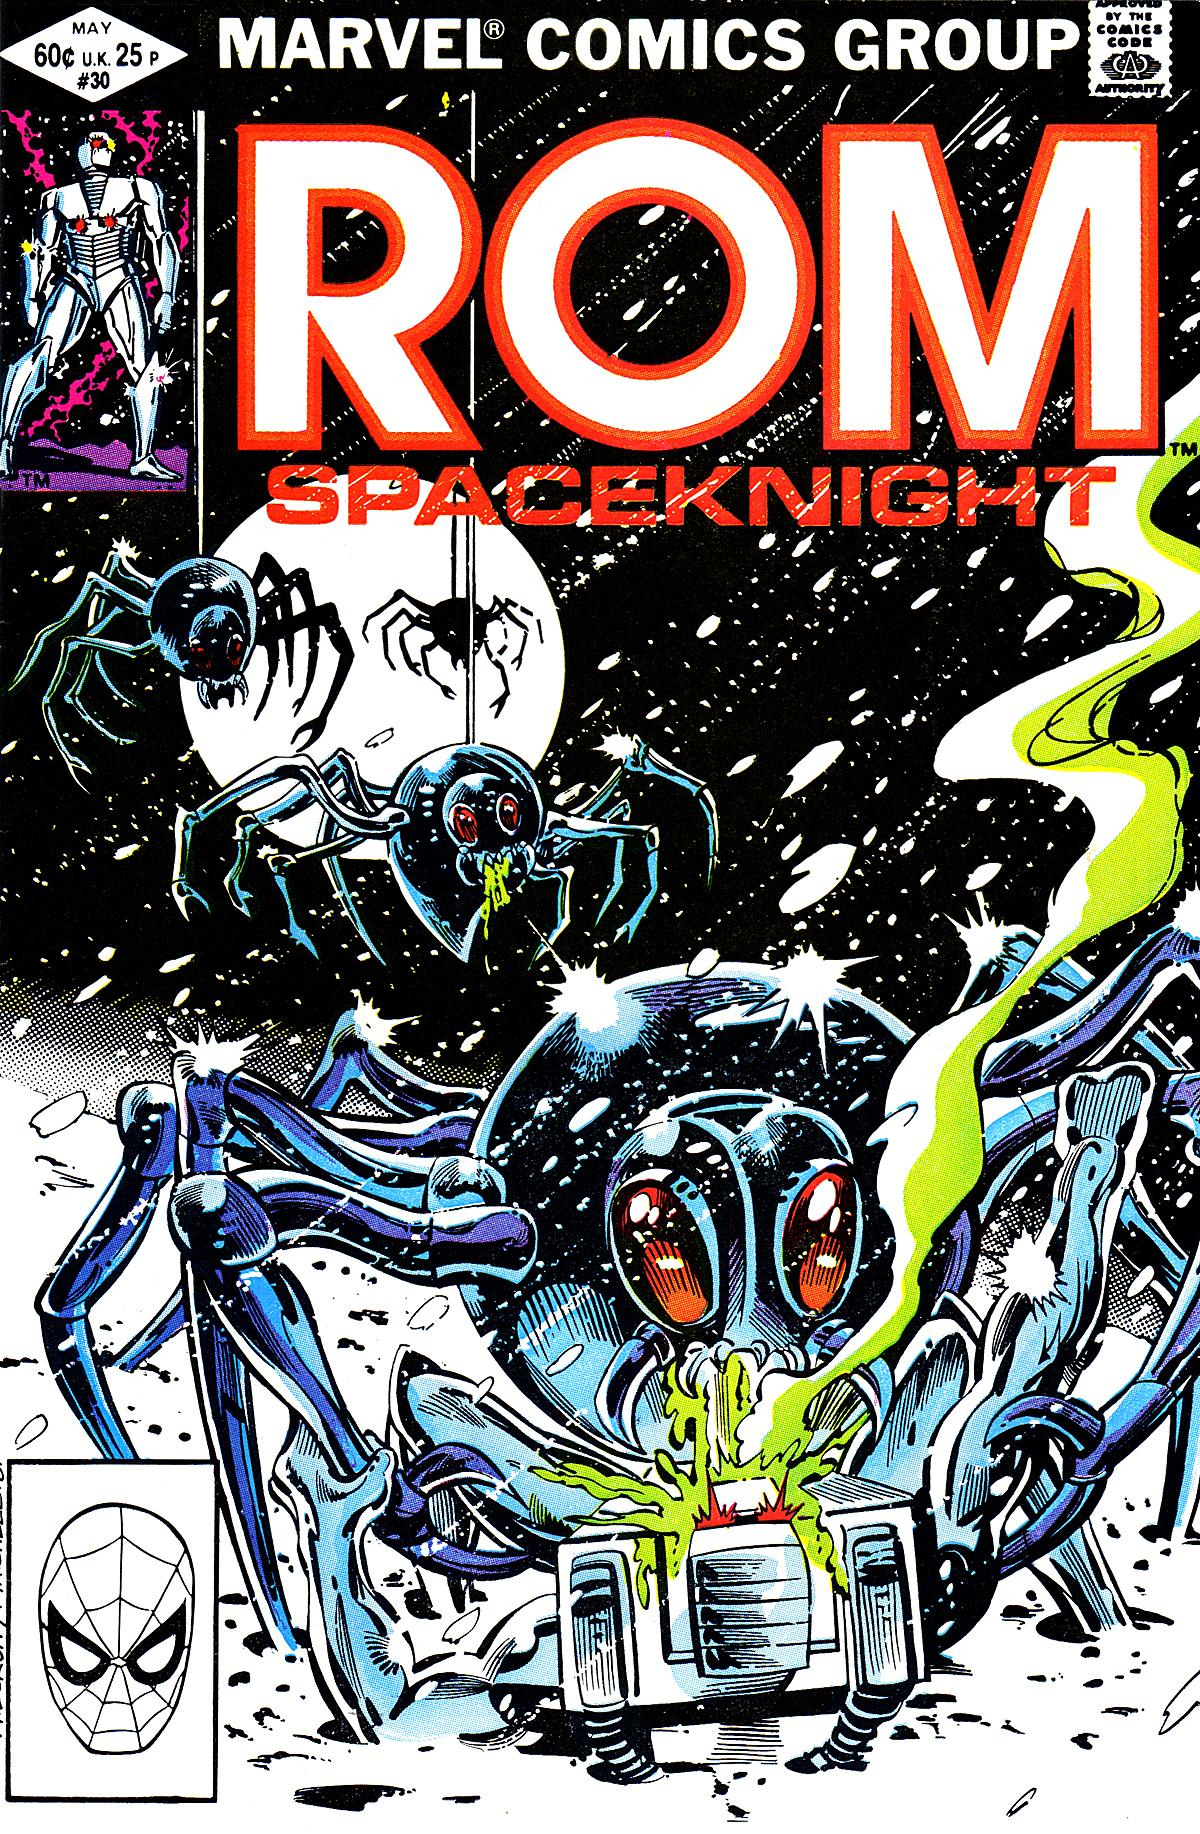 Rom (1979) #30, cover penciled by Al Milgrom & inked by Steve Mitchell.